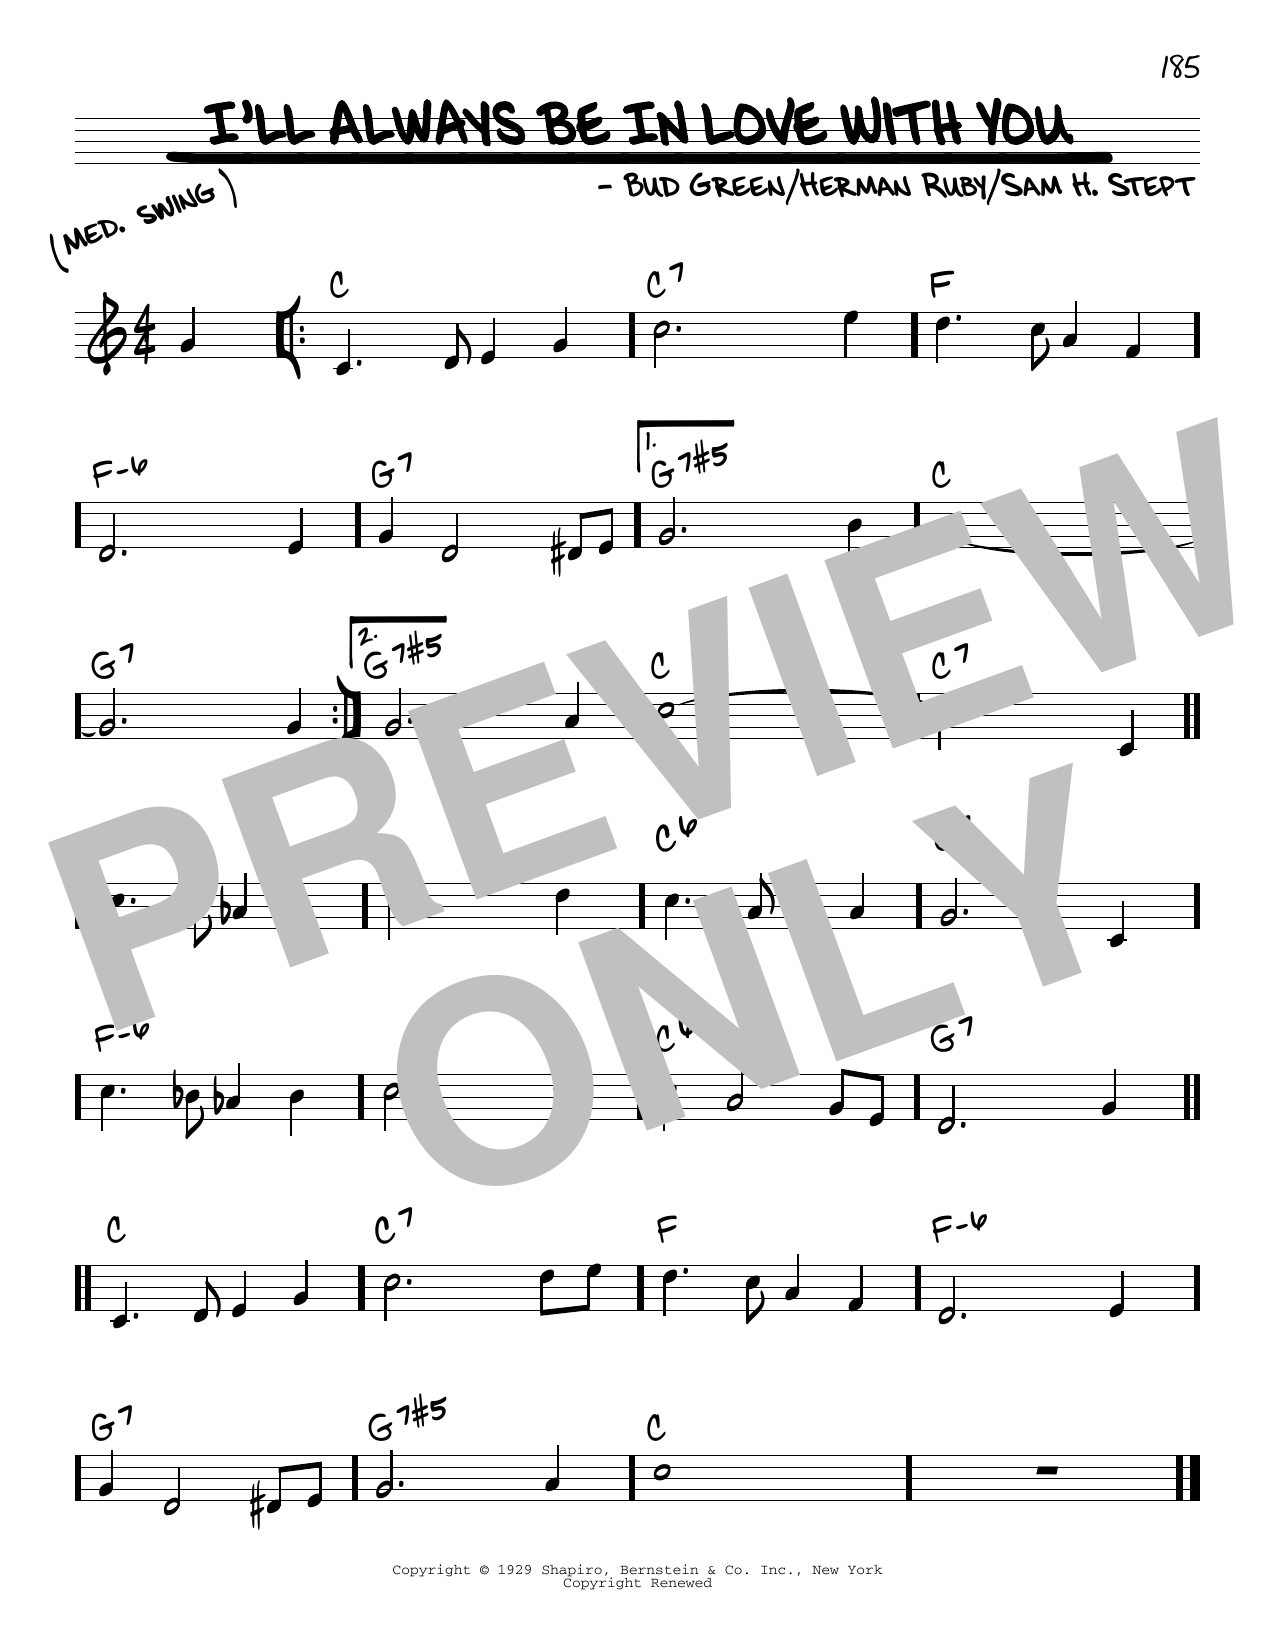 Bud Green I'll Always Be In Love With You sheet music notes and chords. Download Printable PDF.